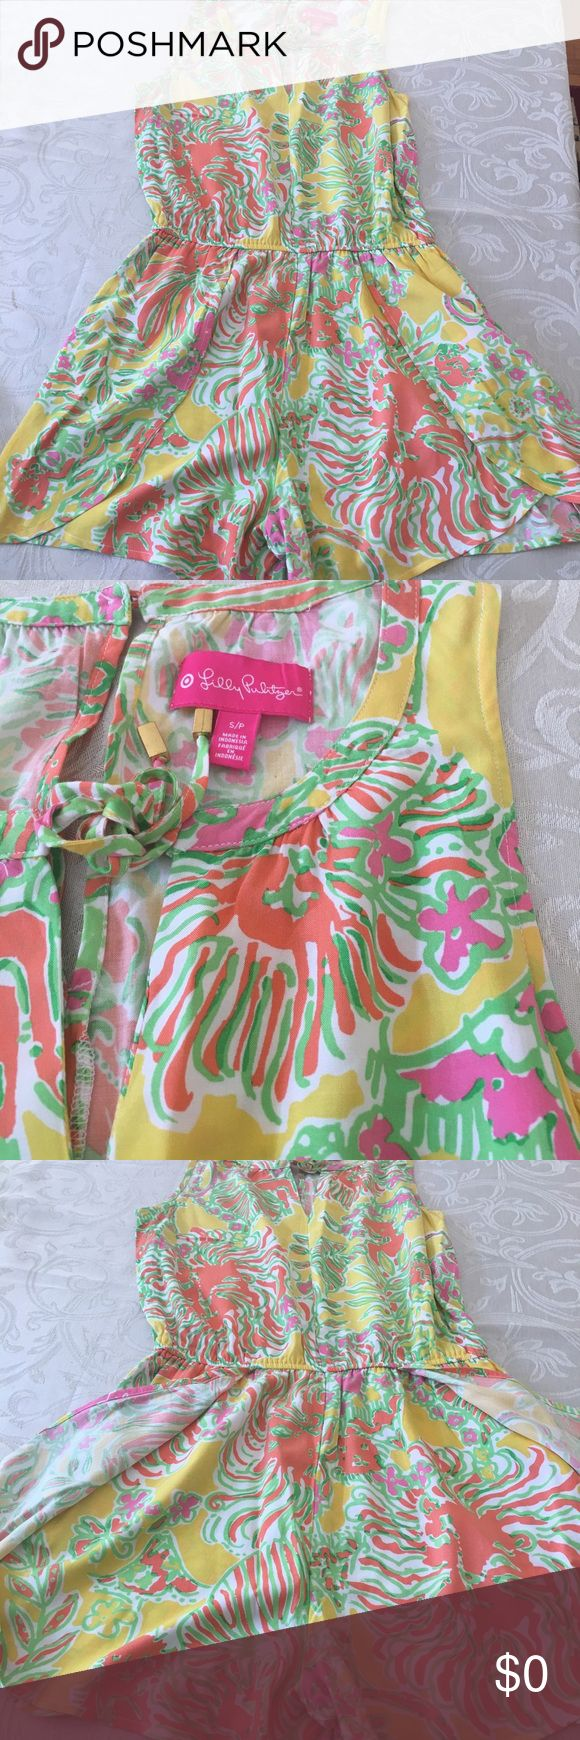 Lilly for Target Happy Place Challis Romper Preloved Lilly for Target romper with pockets is perfect light and airy piece for a warm day. Normal wear no strains or rips. Lilly Pulitzer Shorts